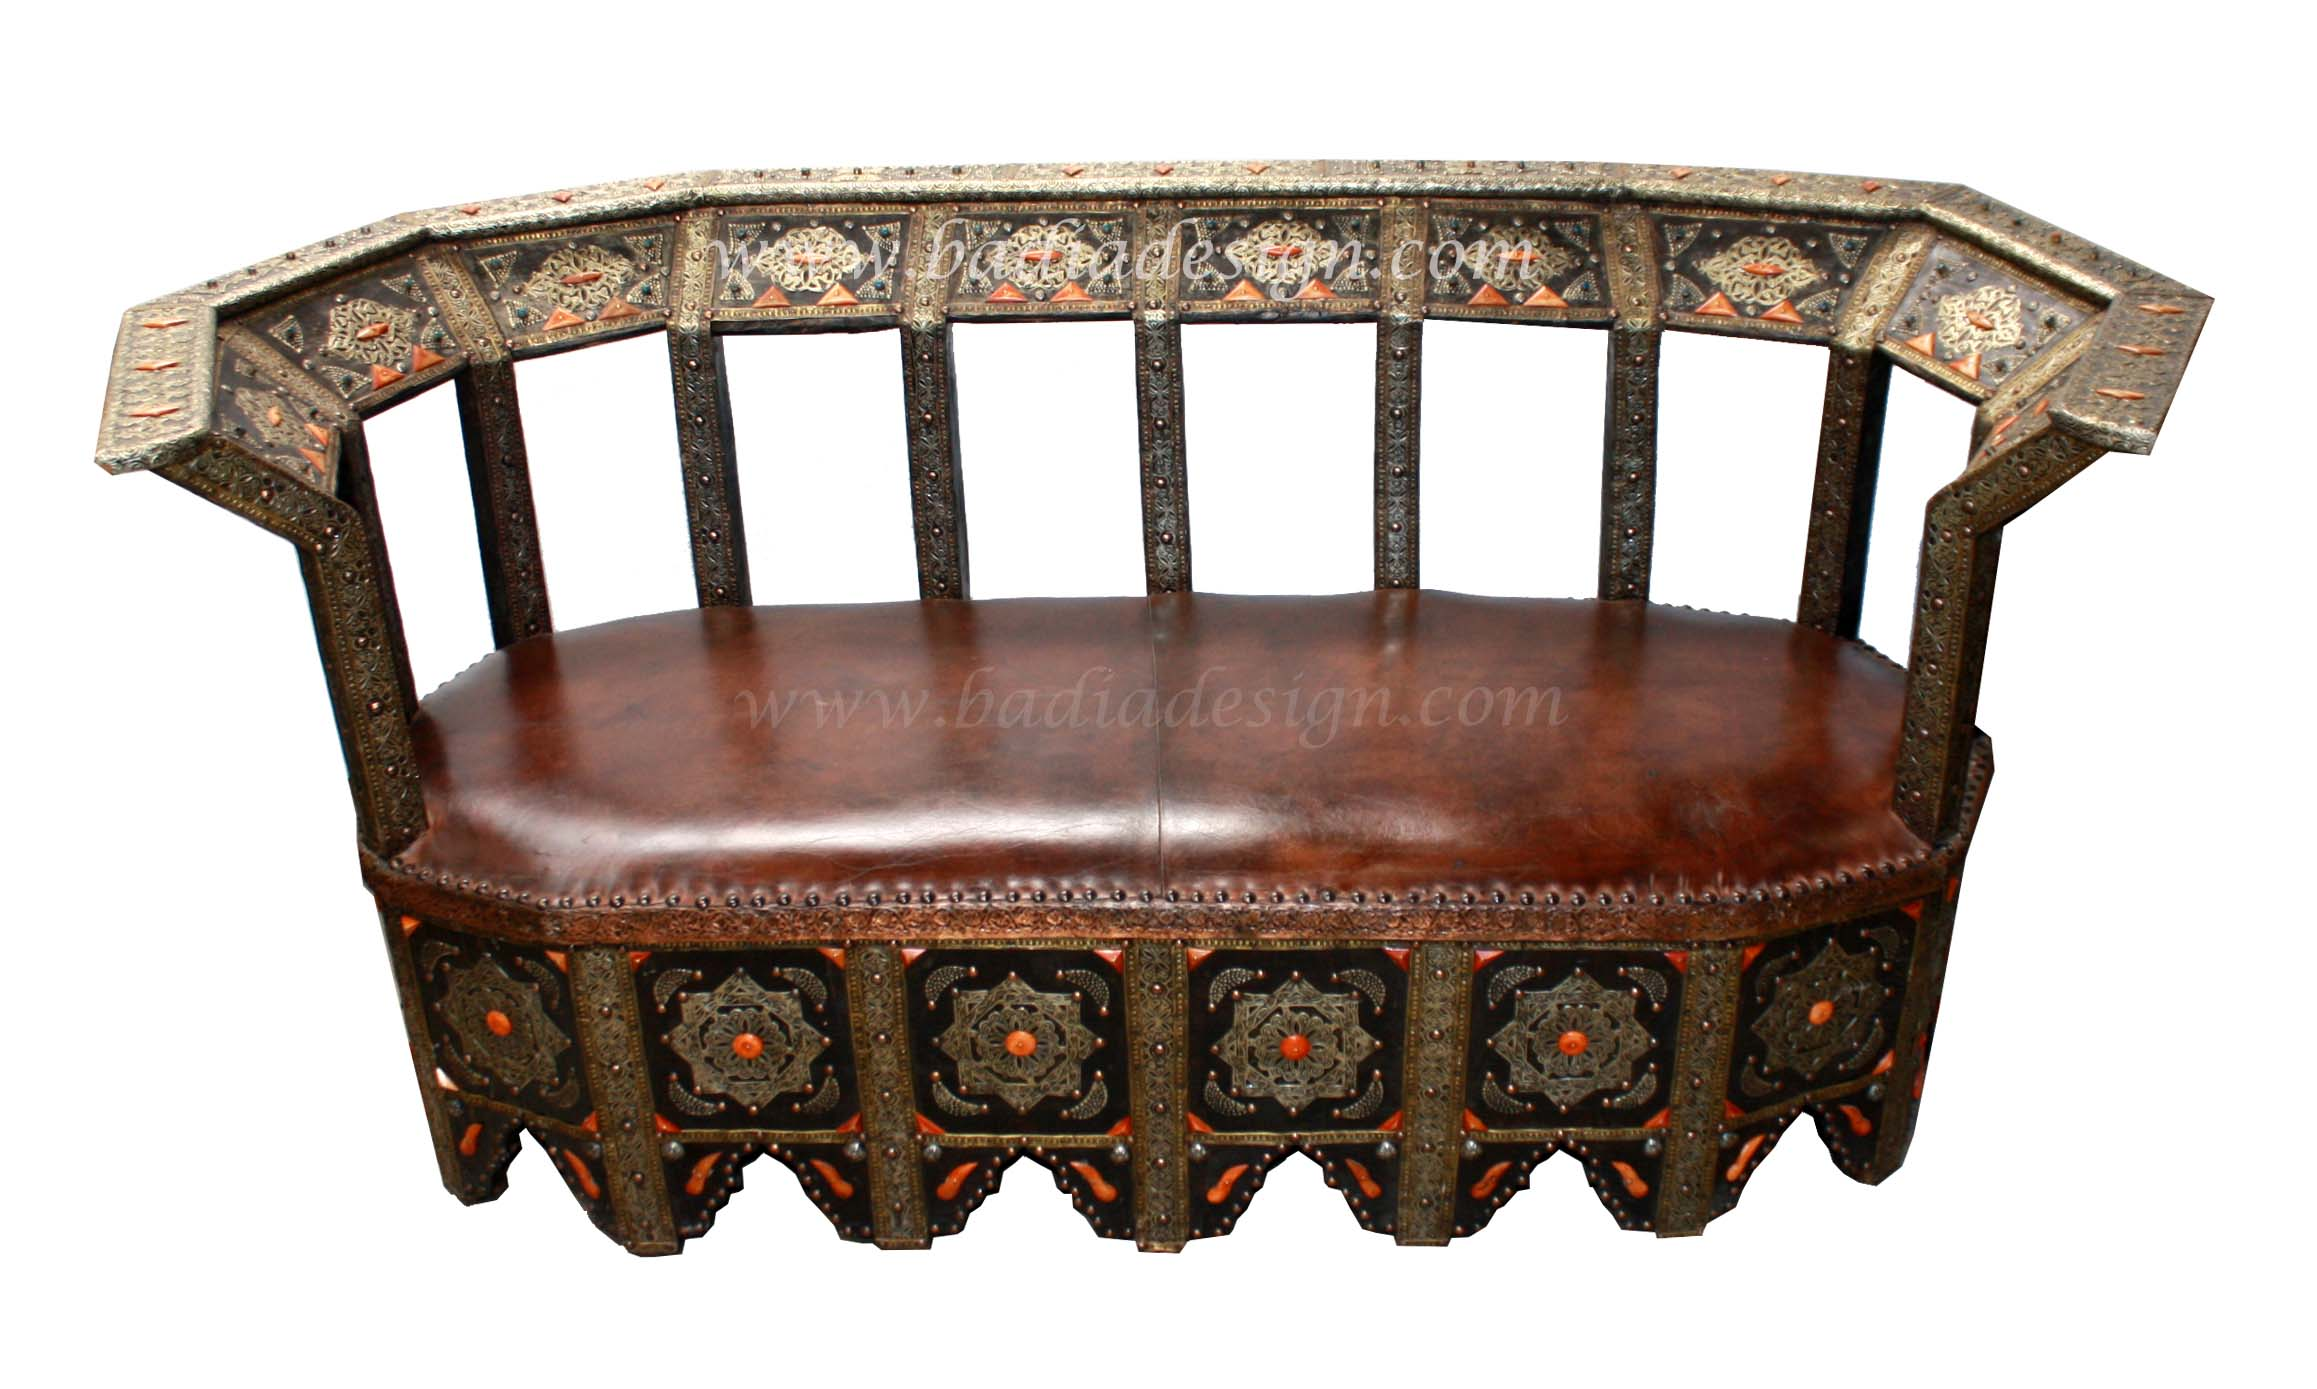 Moroccan Metal and Orange Bone Bench with Leather Seating